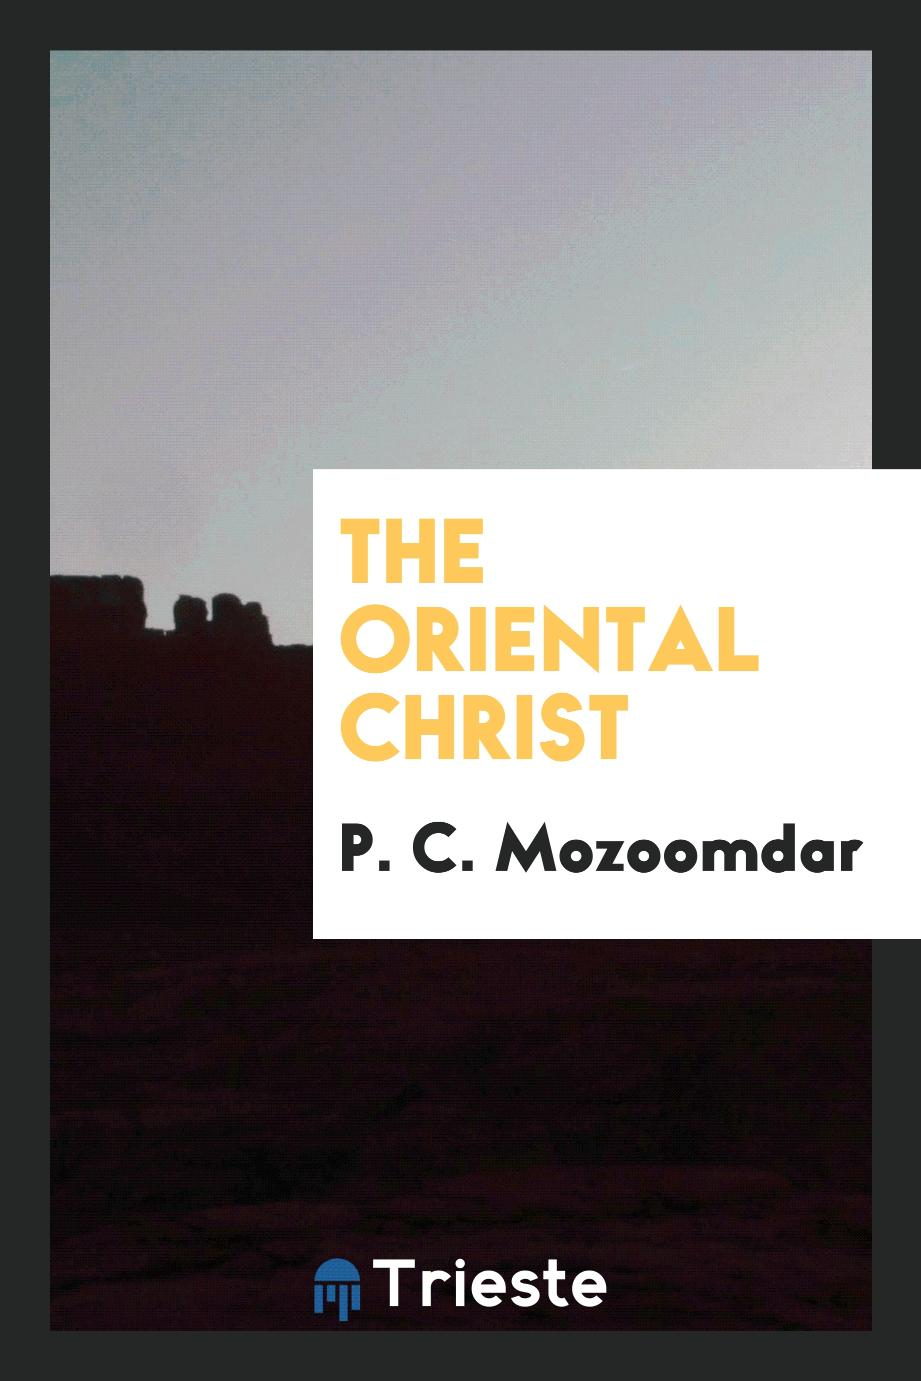 P. C. Mozoomdar - The Oriental Christ